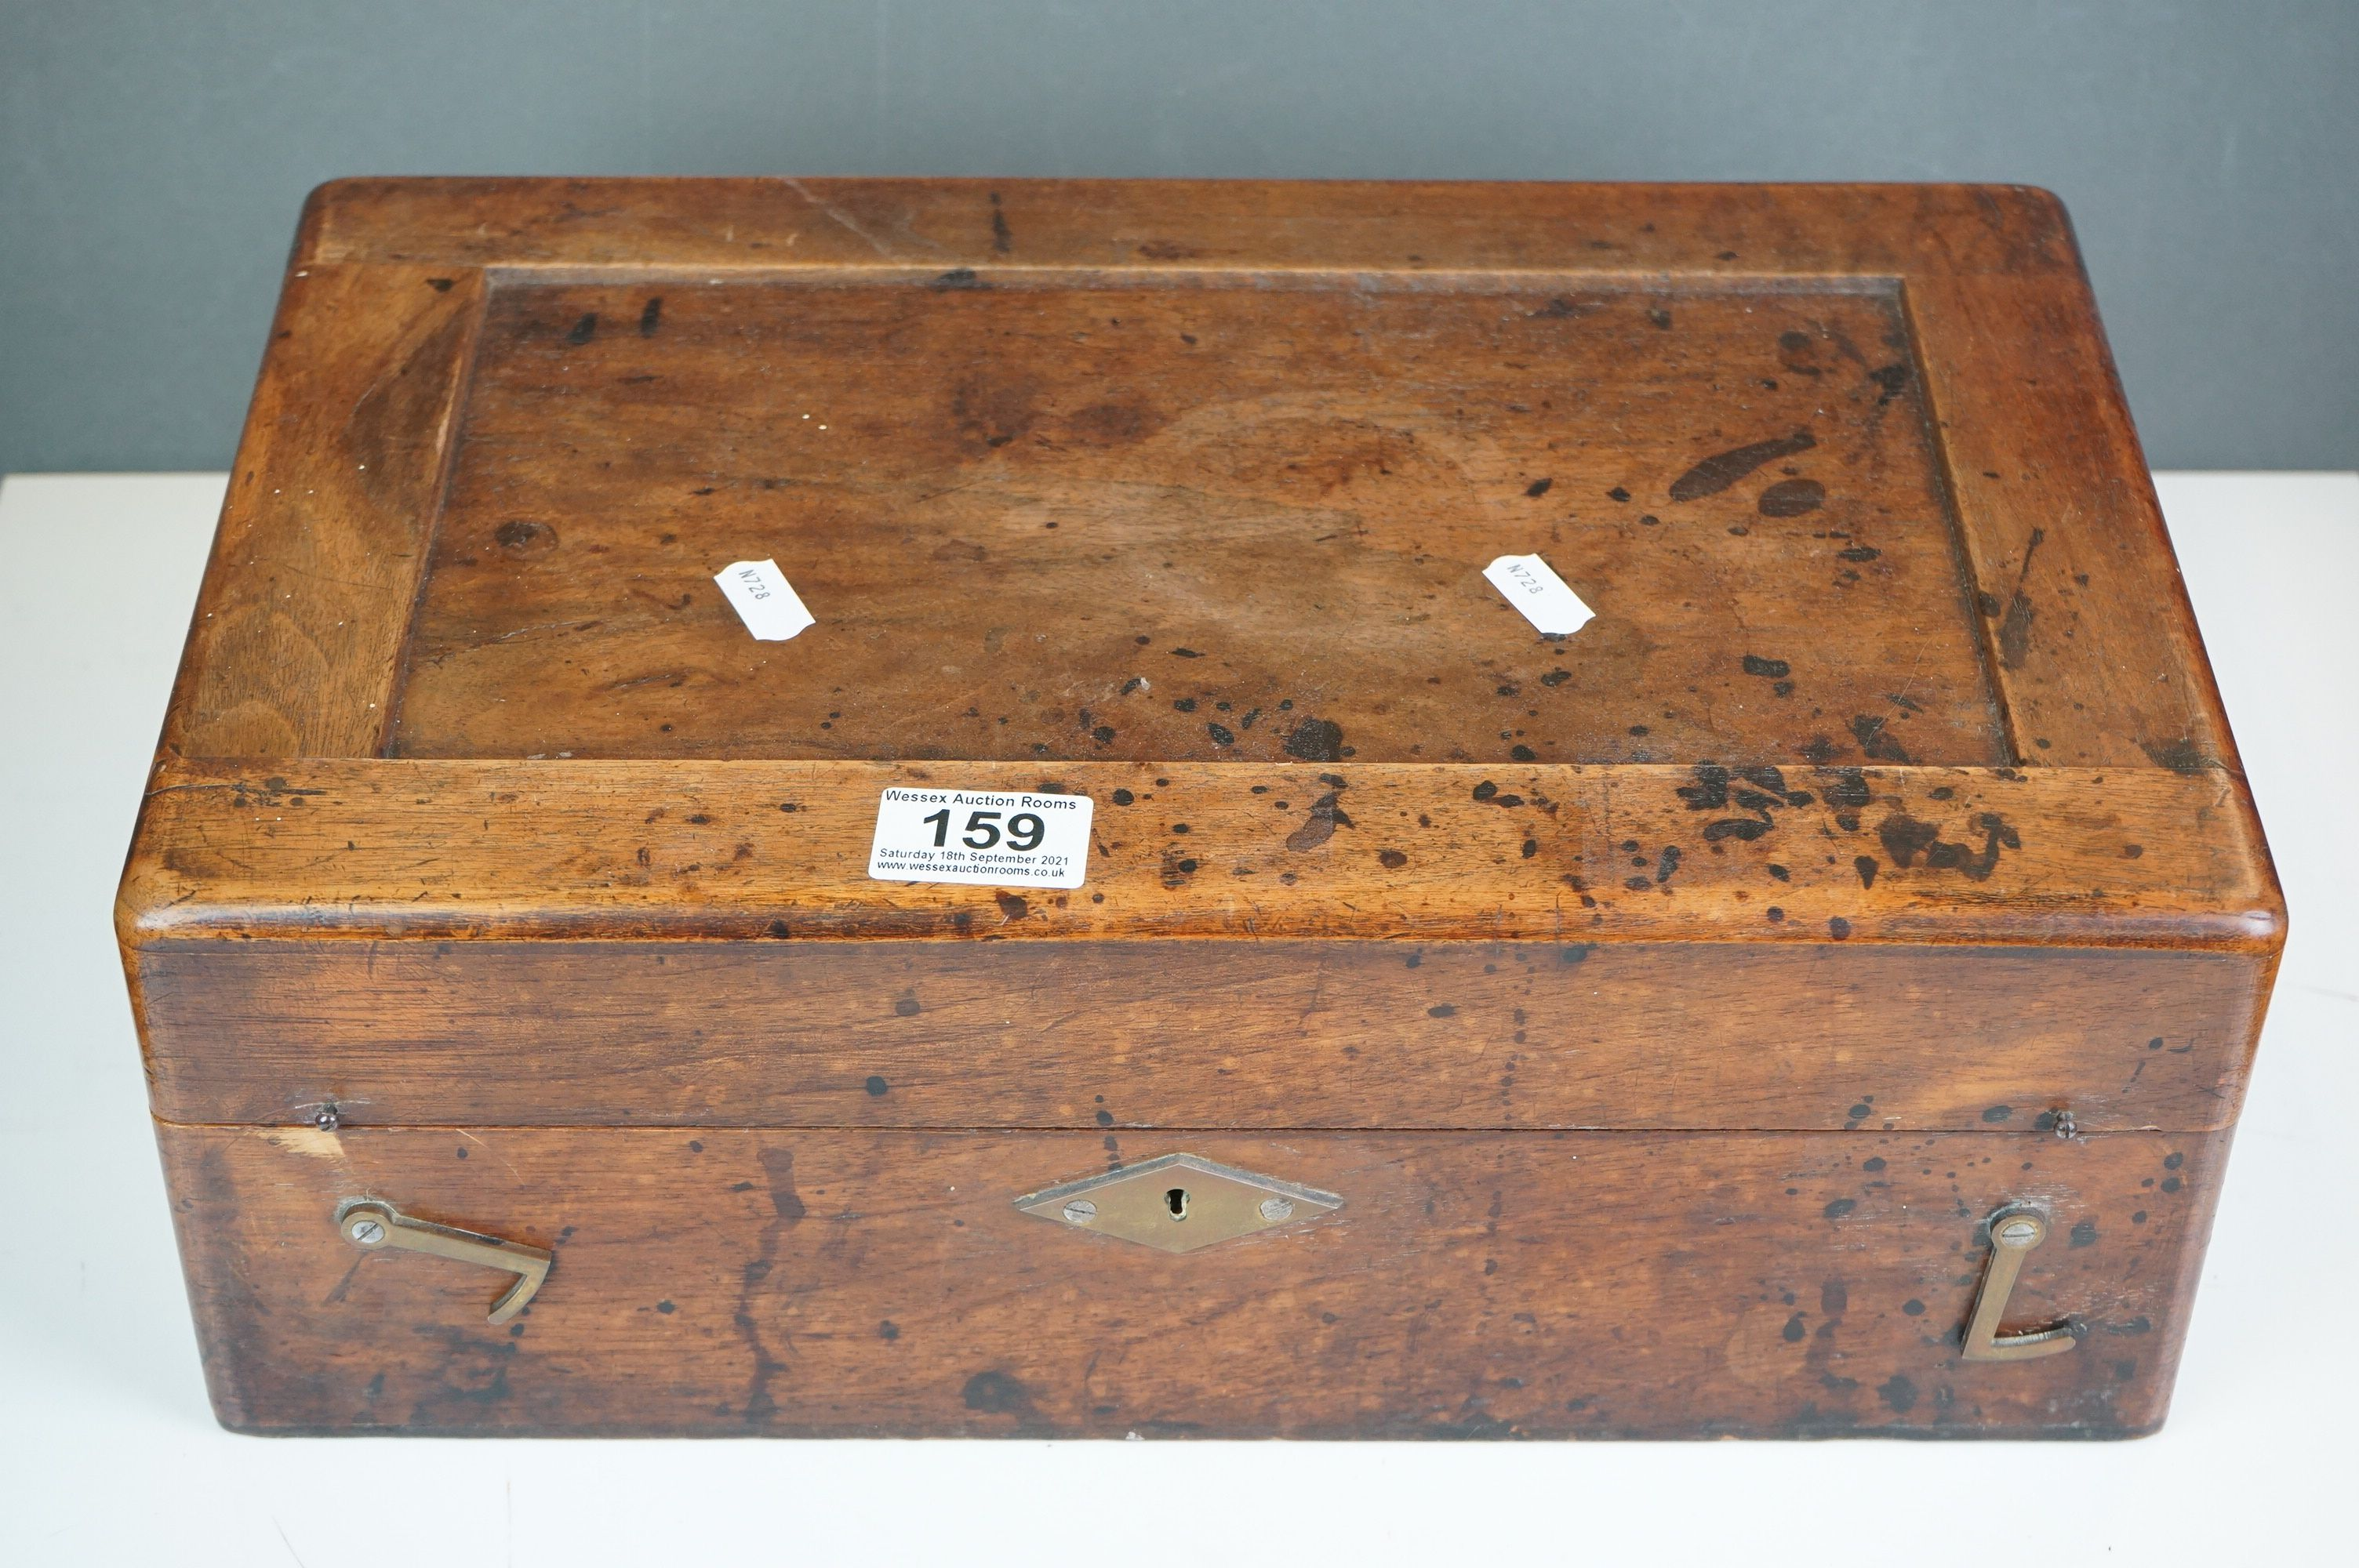 Early 20th century Wooden Watch Repairers Box fitted with various equipment, 38cms long - Image 5 of 5